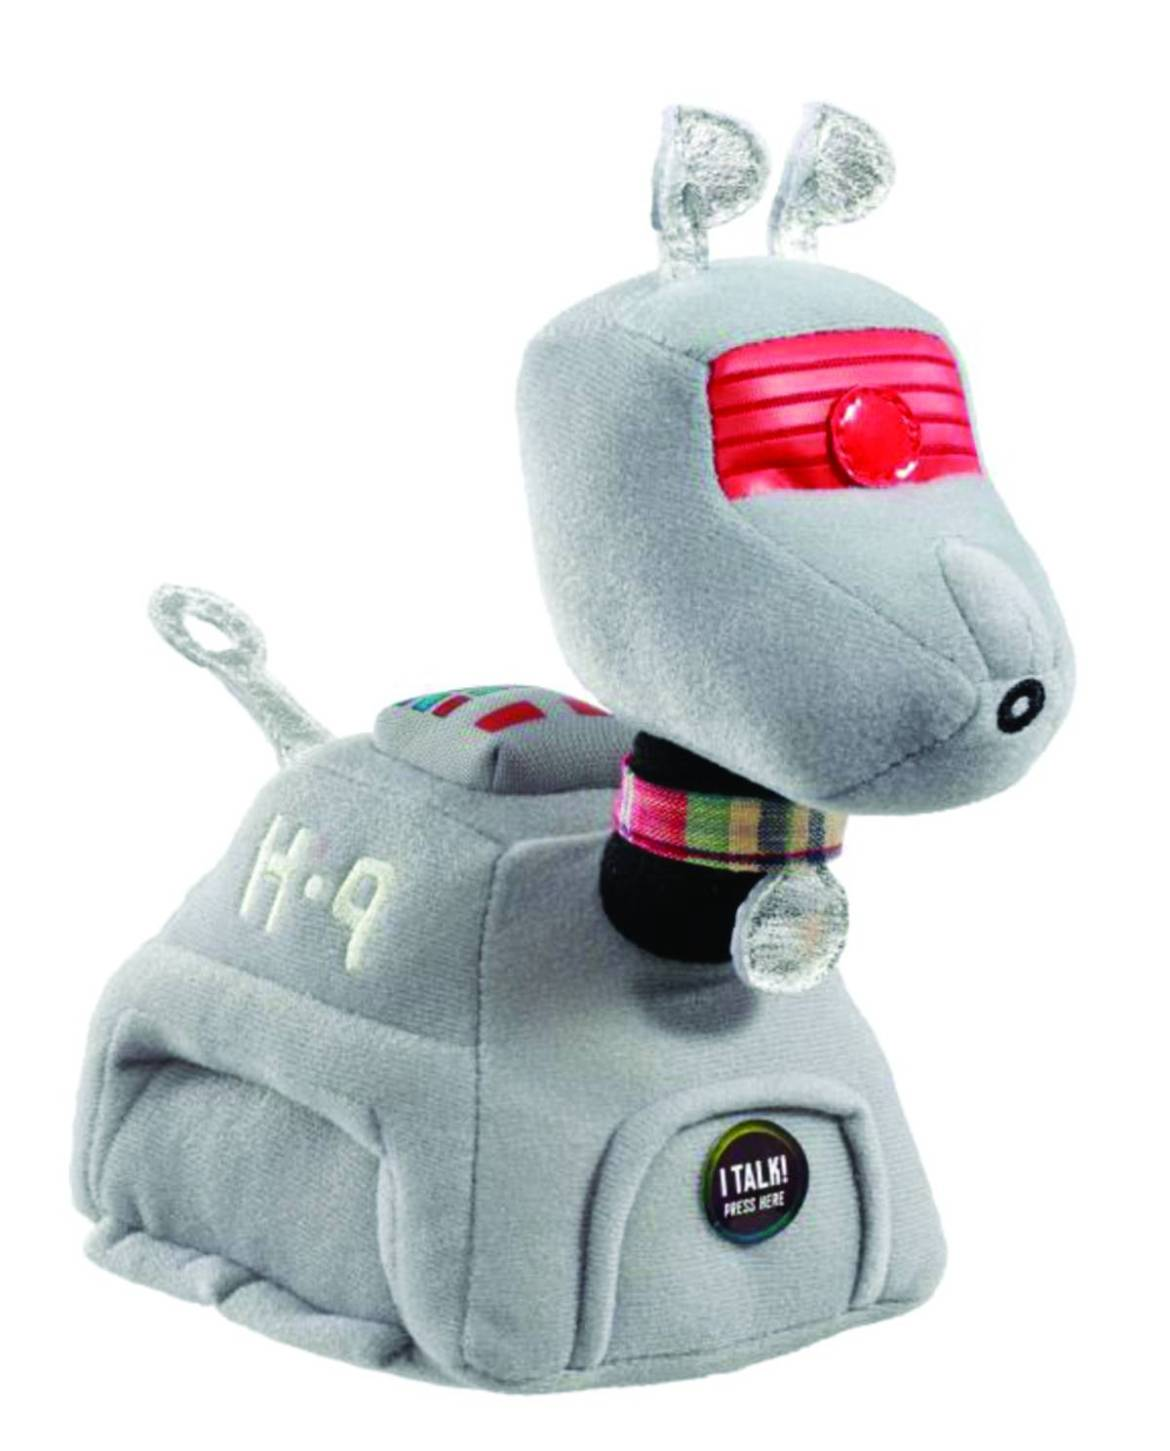 DoctorWhoPlush Celebrate the new Doctor Who with the PREVIEWS Exclusive K-9 Plush